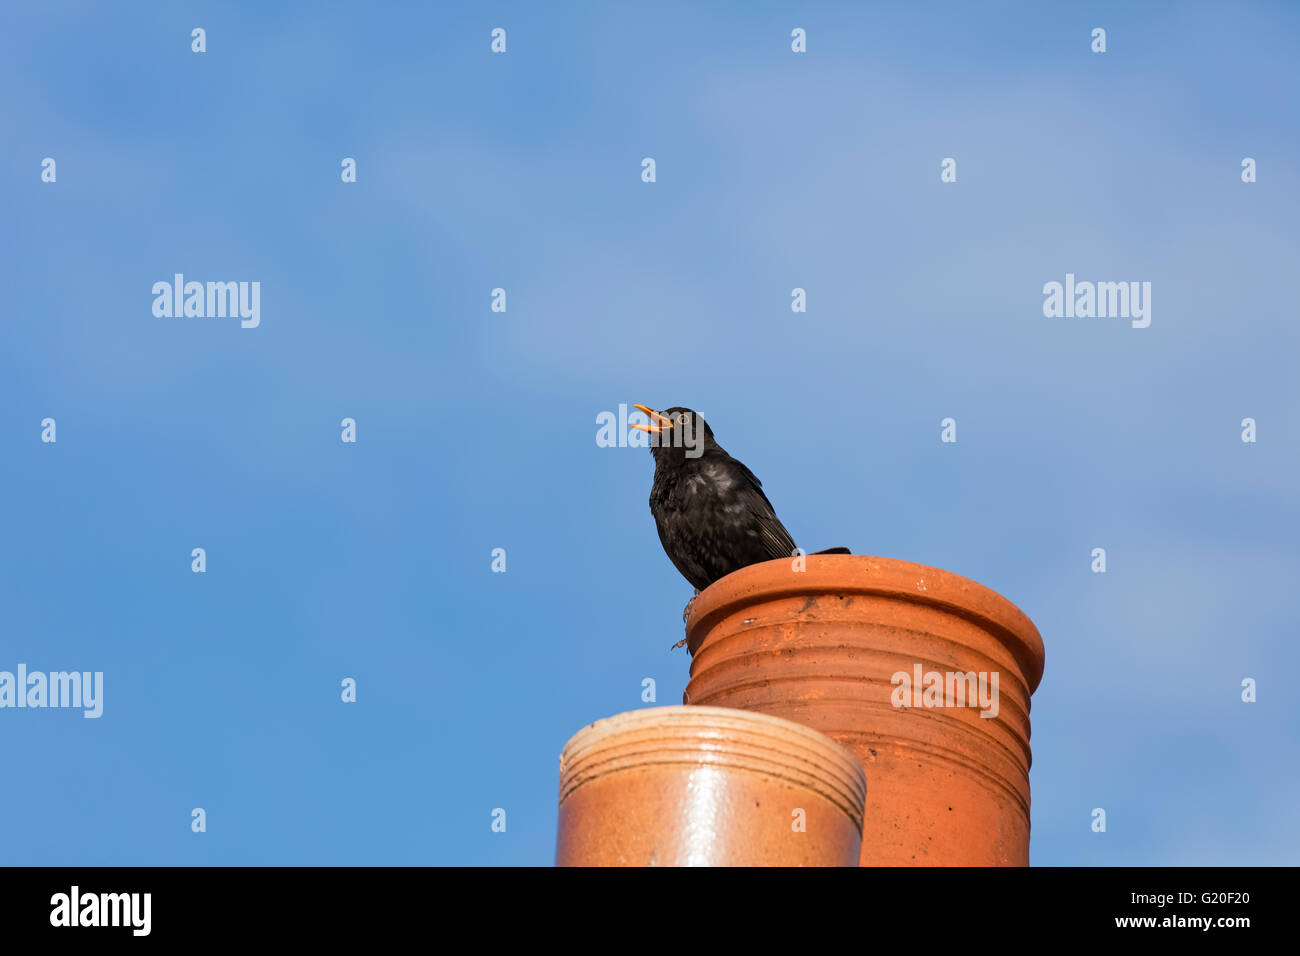 Blackbird perched on a chimney with a bright blue sky behind and with its beak open - Stock Image